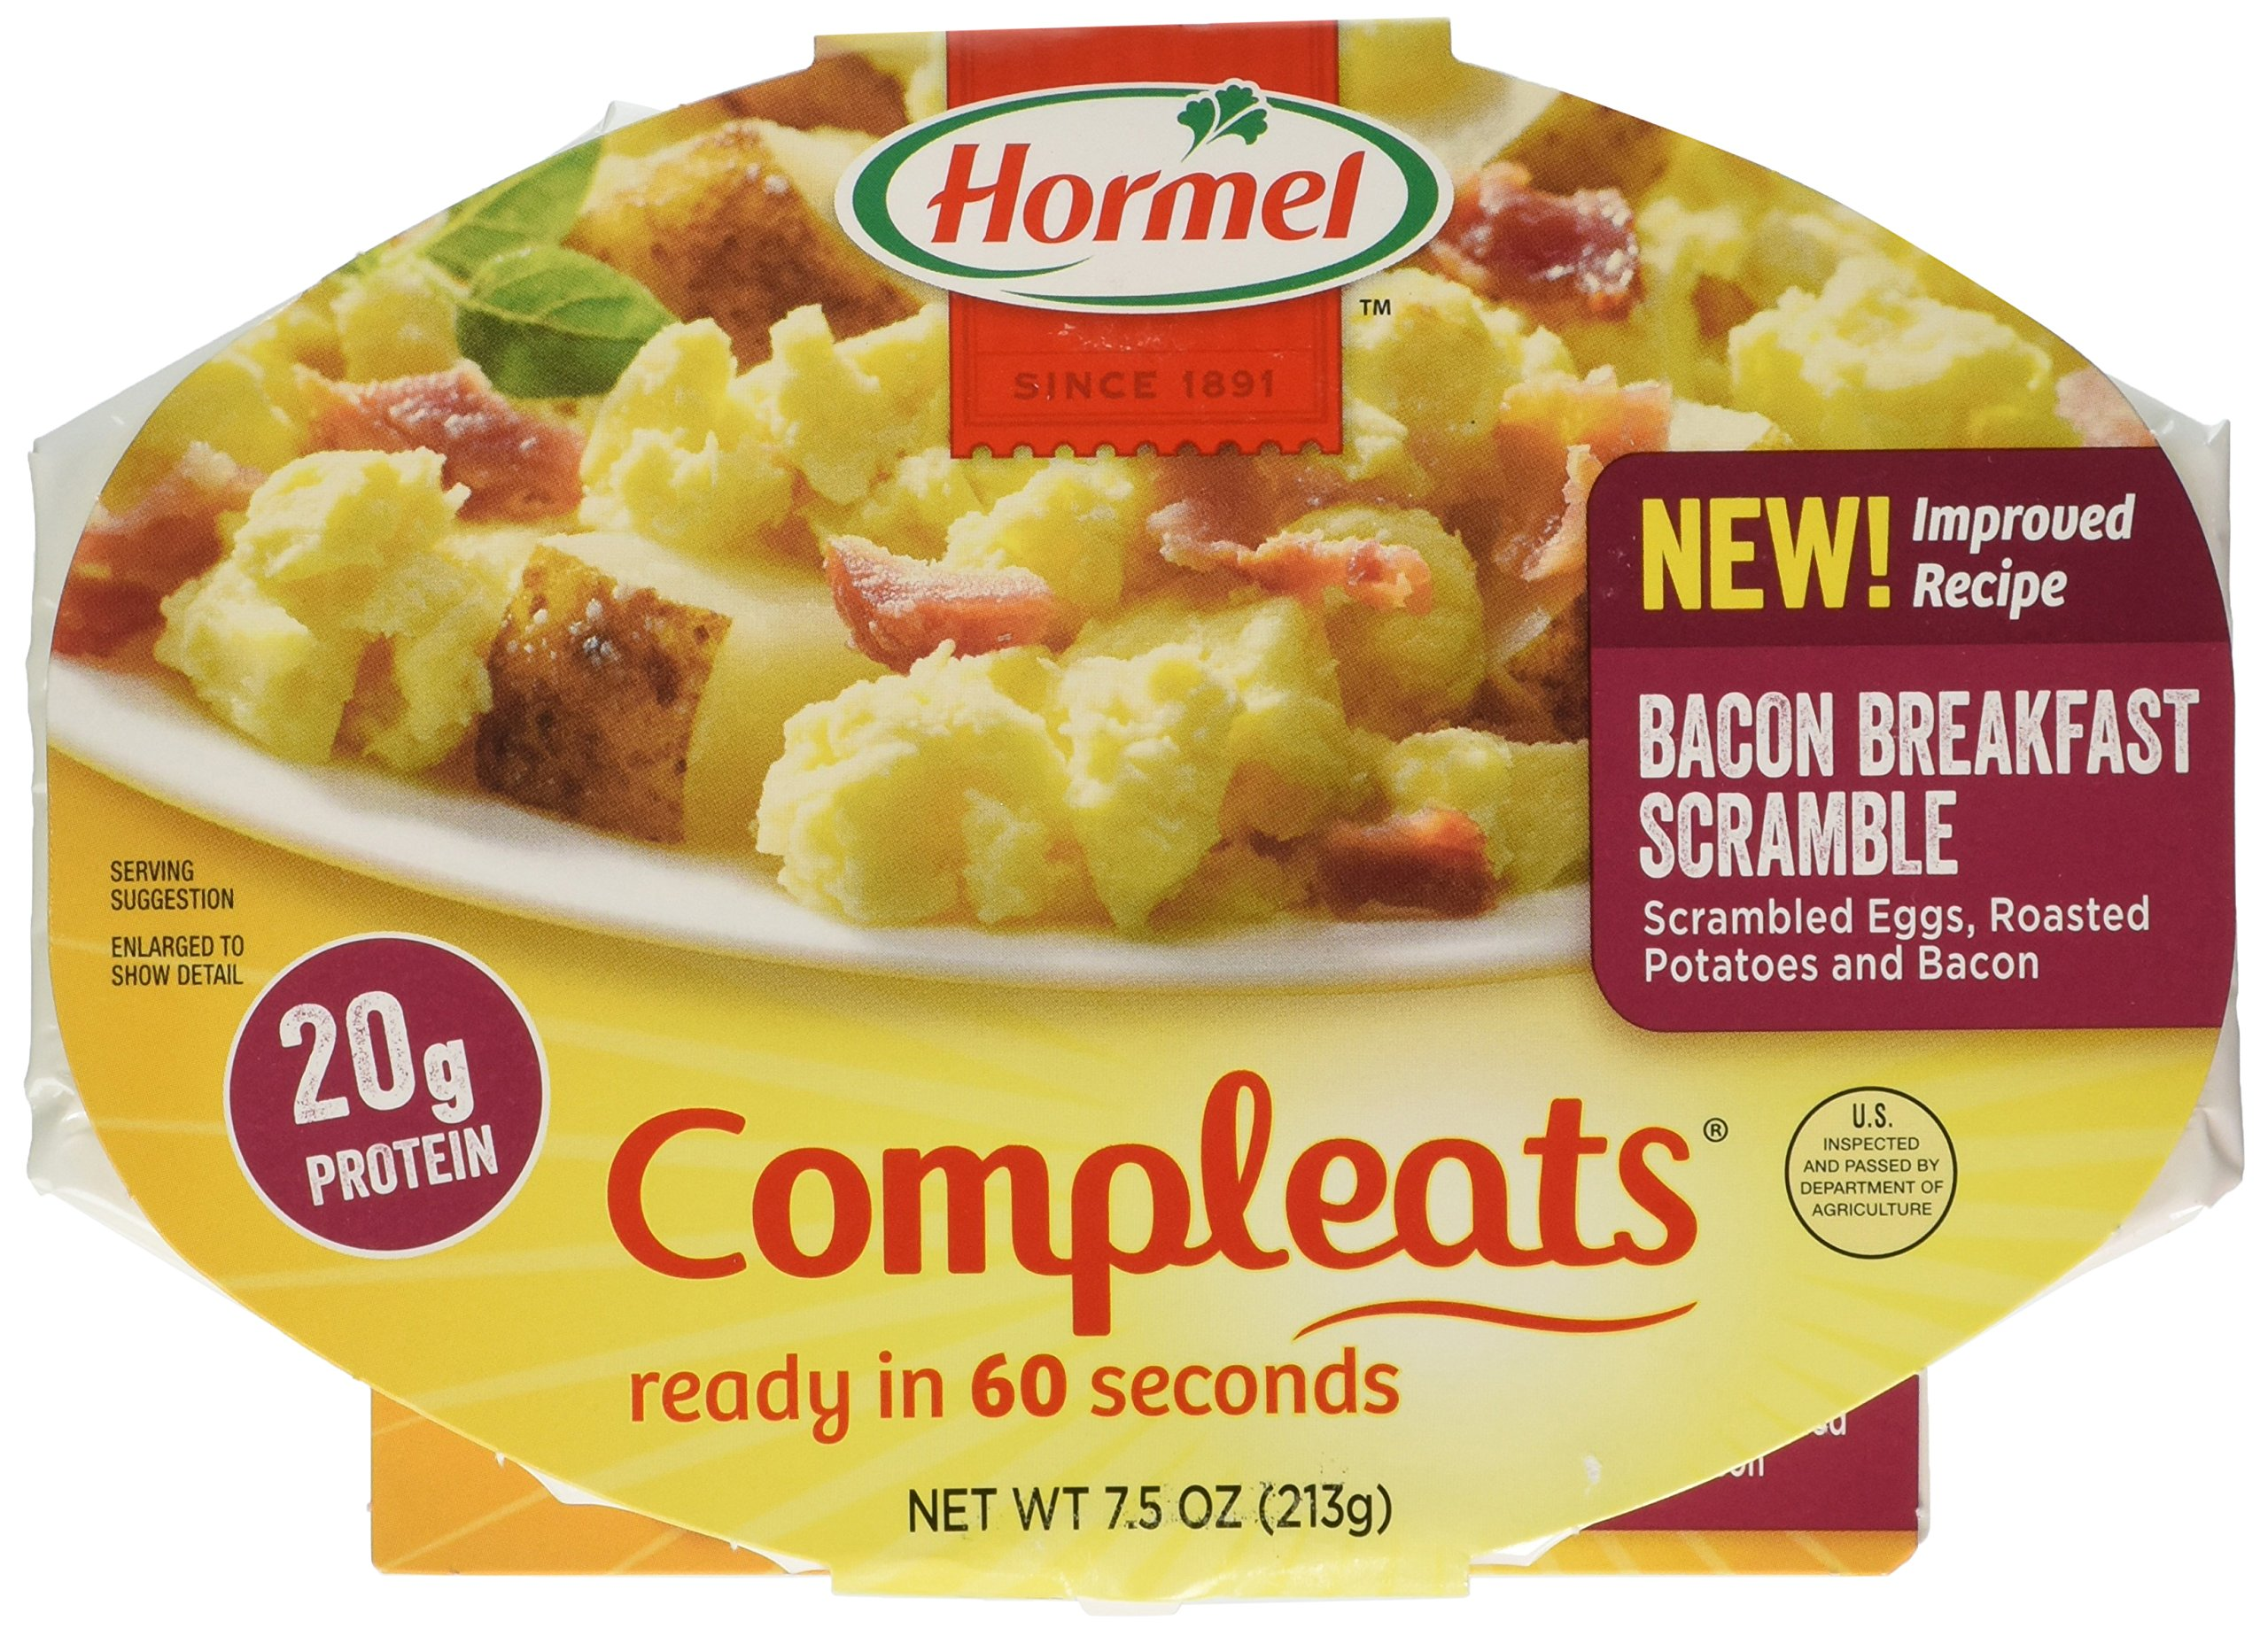 Buy Hormel Foods Now!